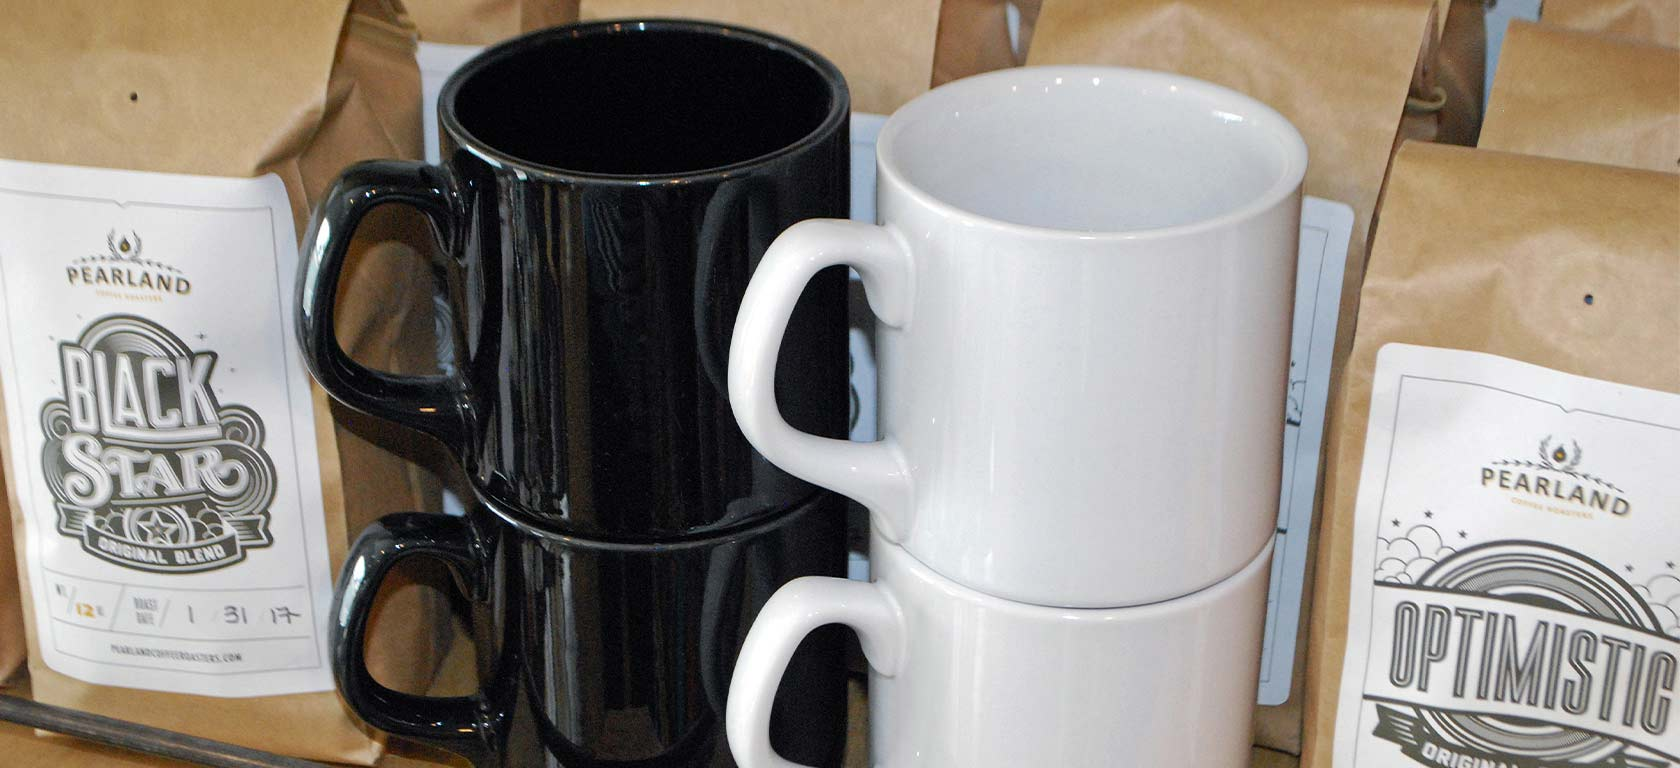 Ceramic black and white mugs displayed between two bags of coffee beans.